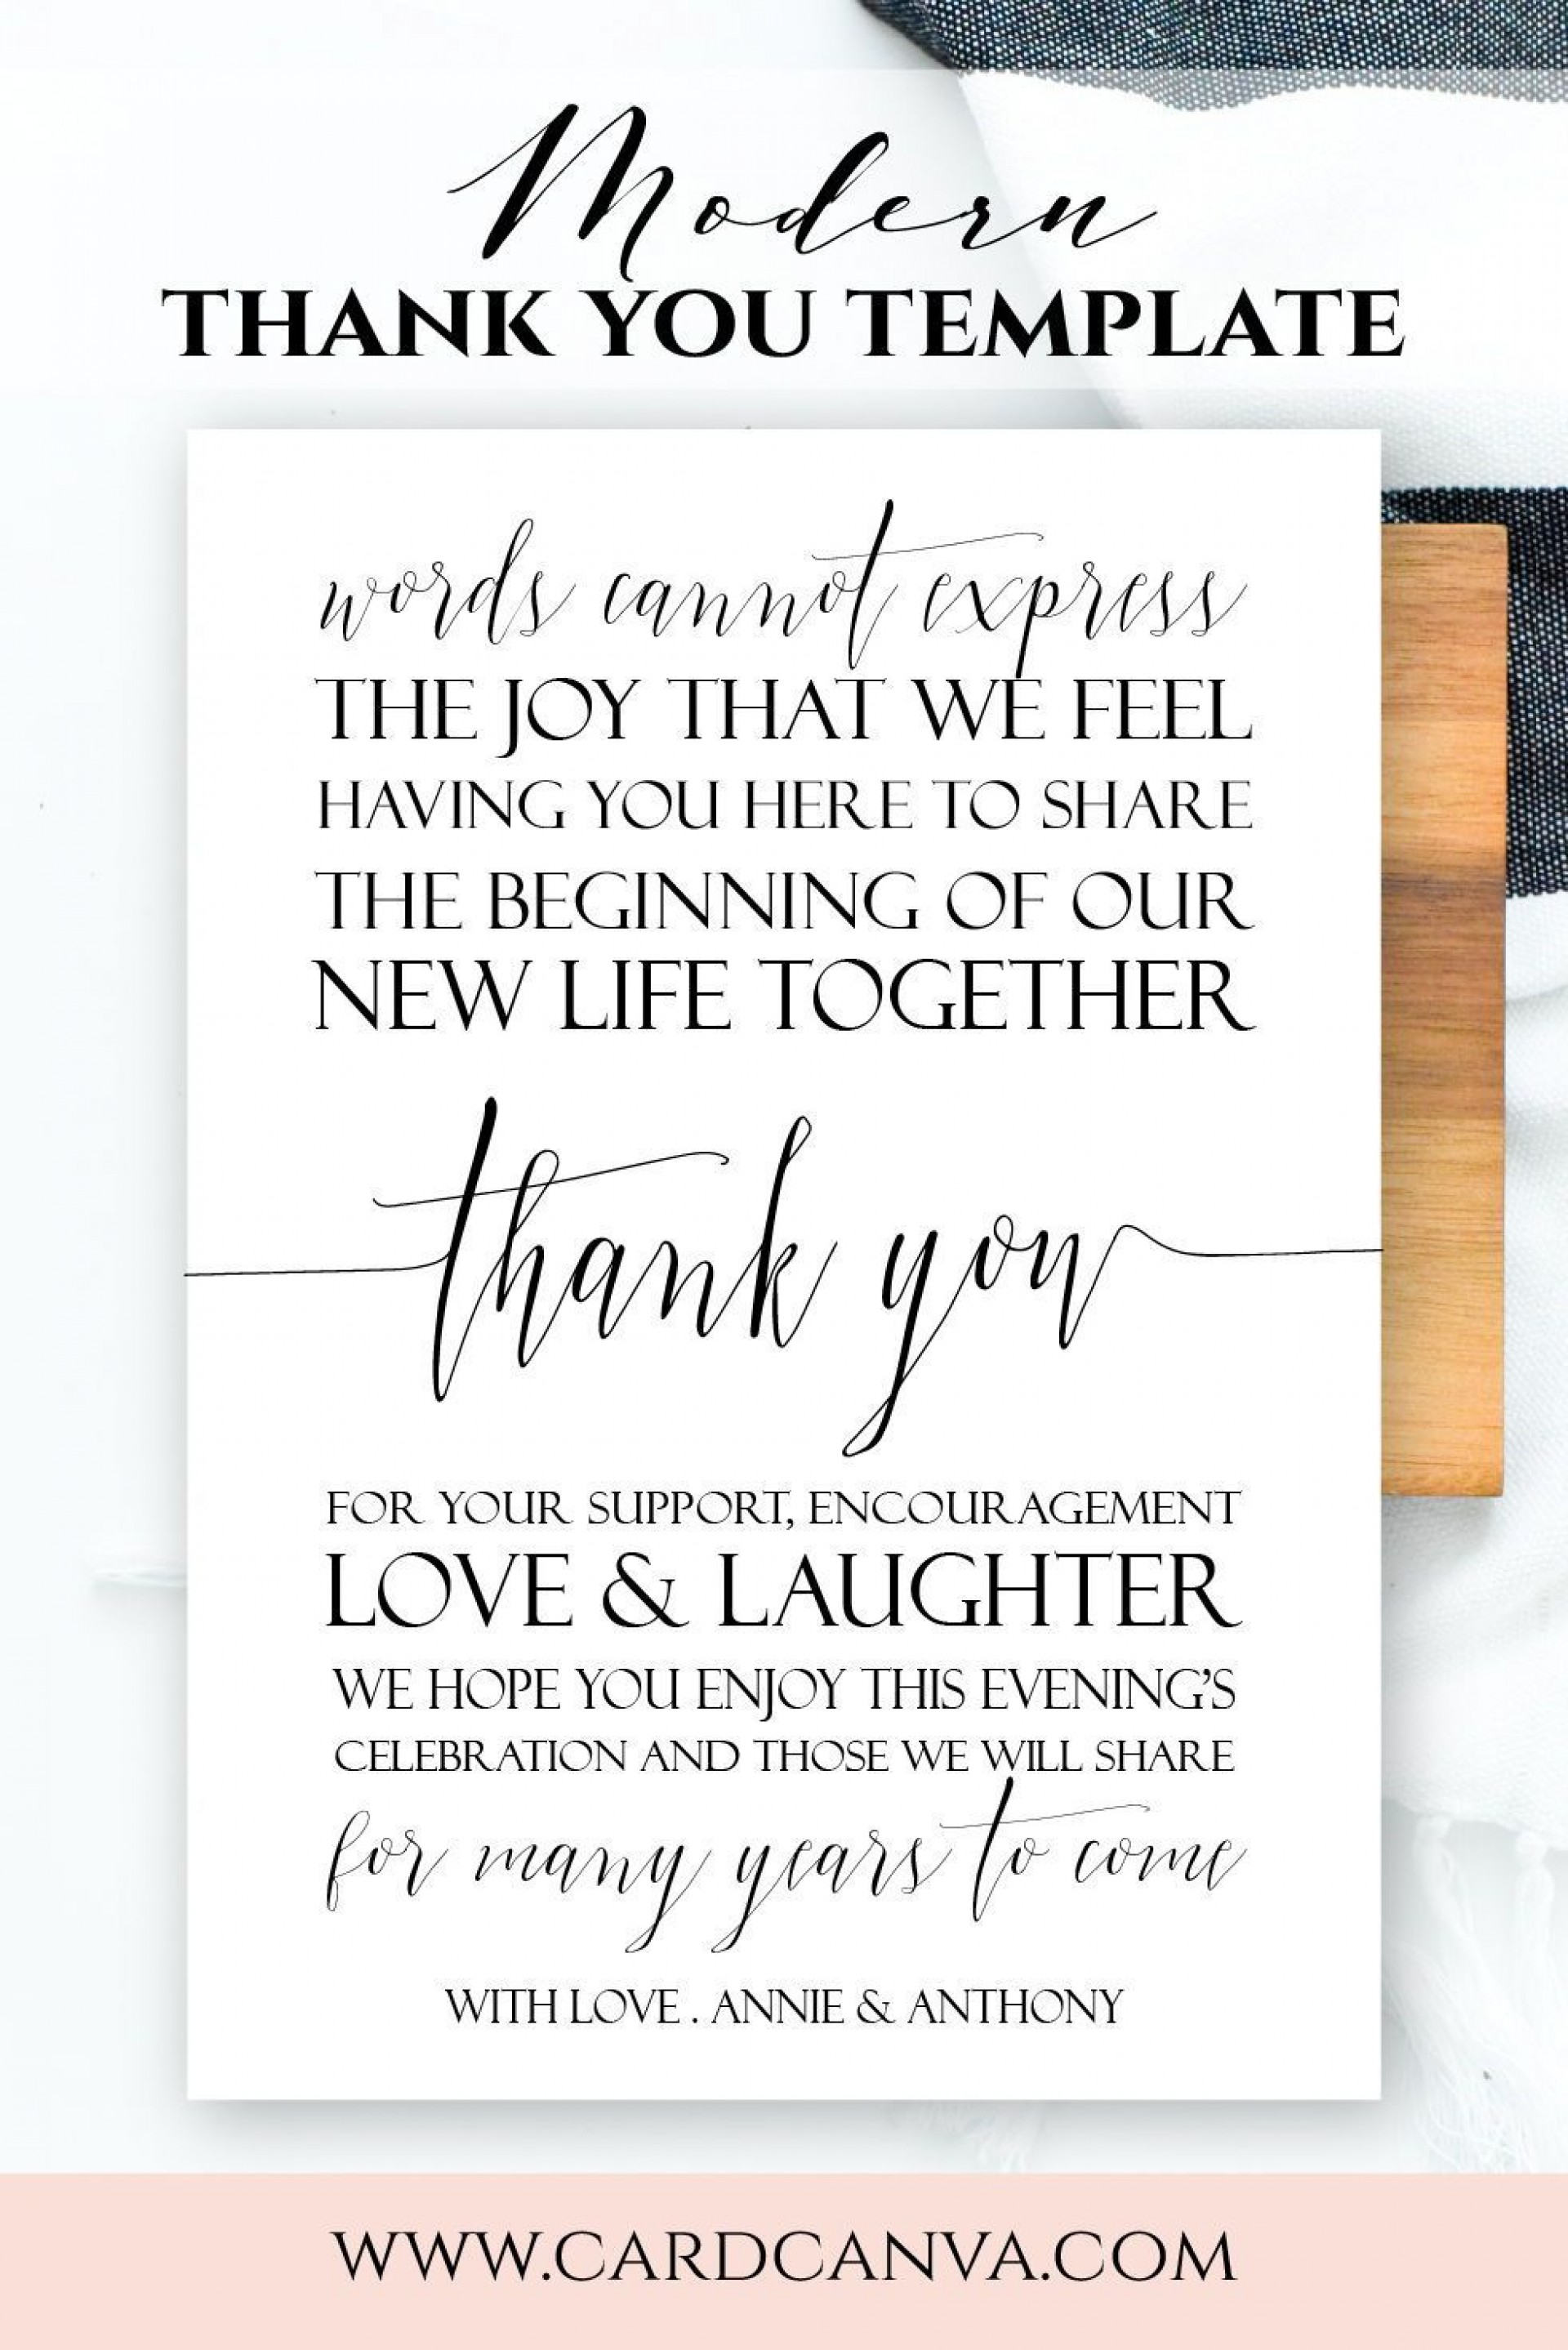 000 Singular Thank You Note Letter Template Word High Def 1920